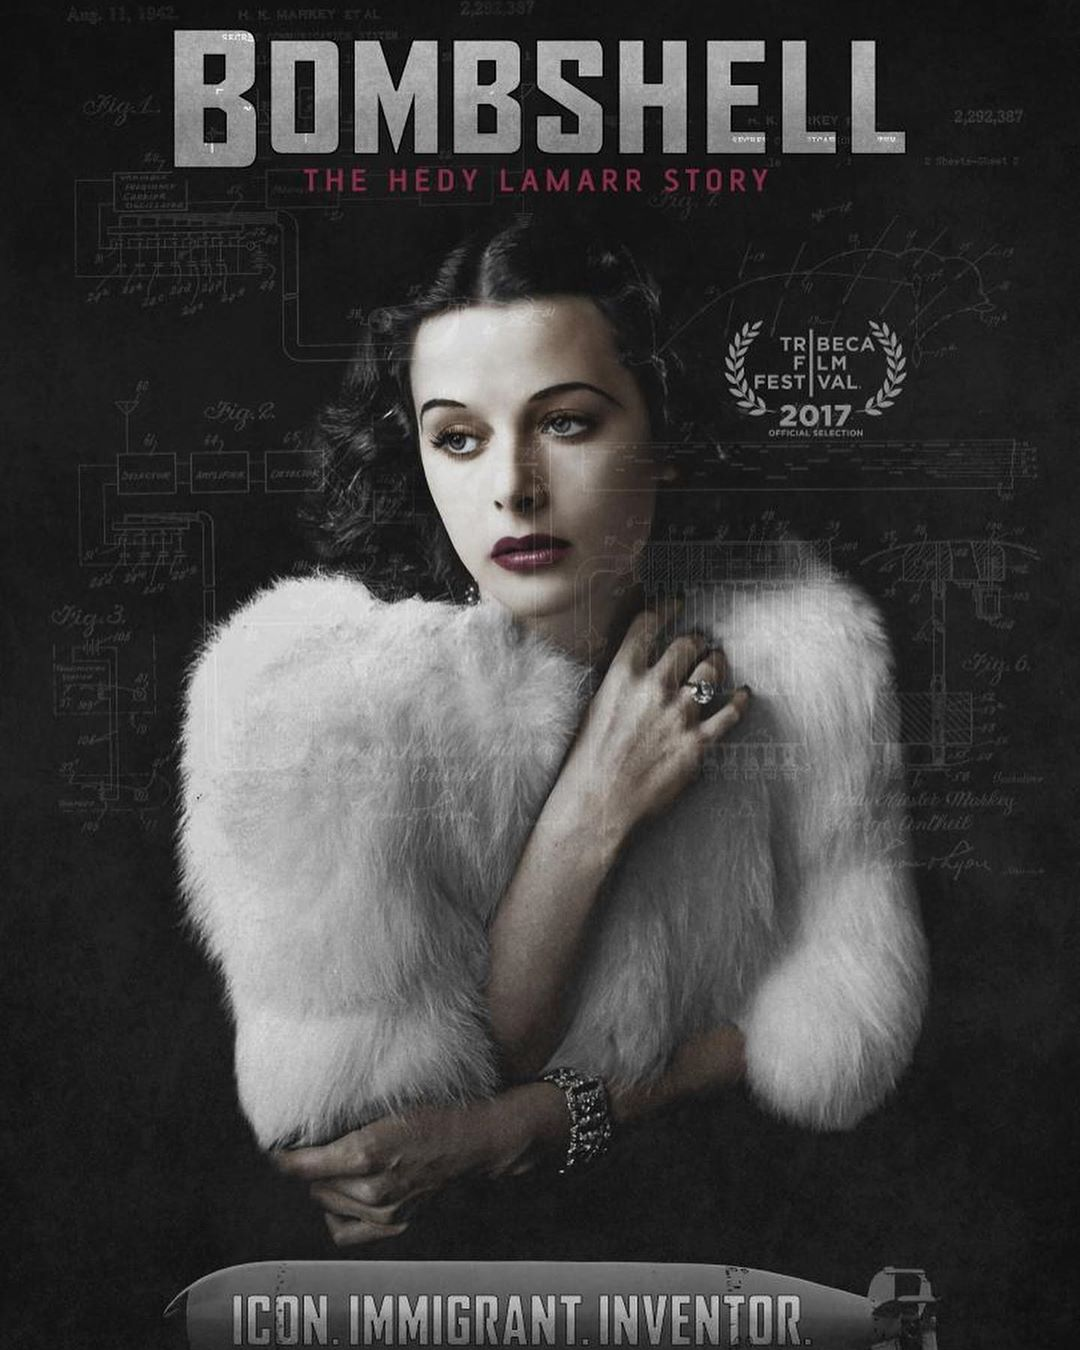 Bombshell. The Hedy Lamarr Story 3